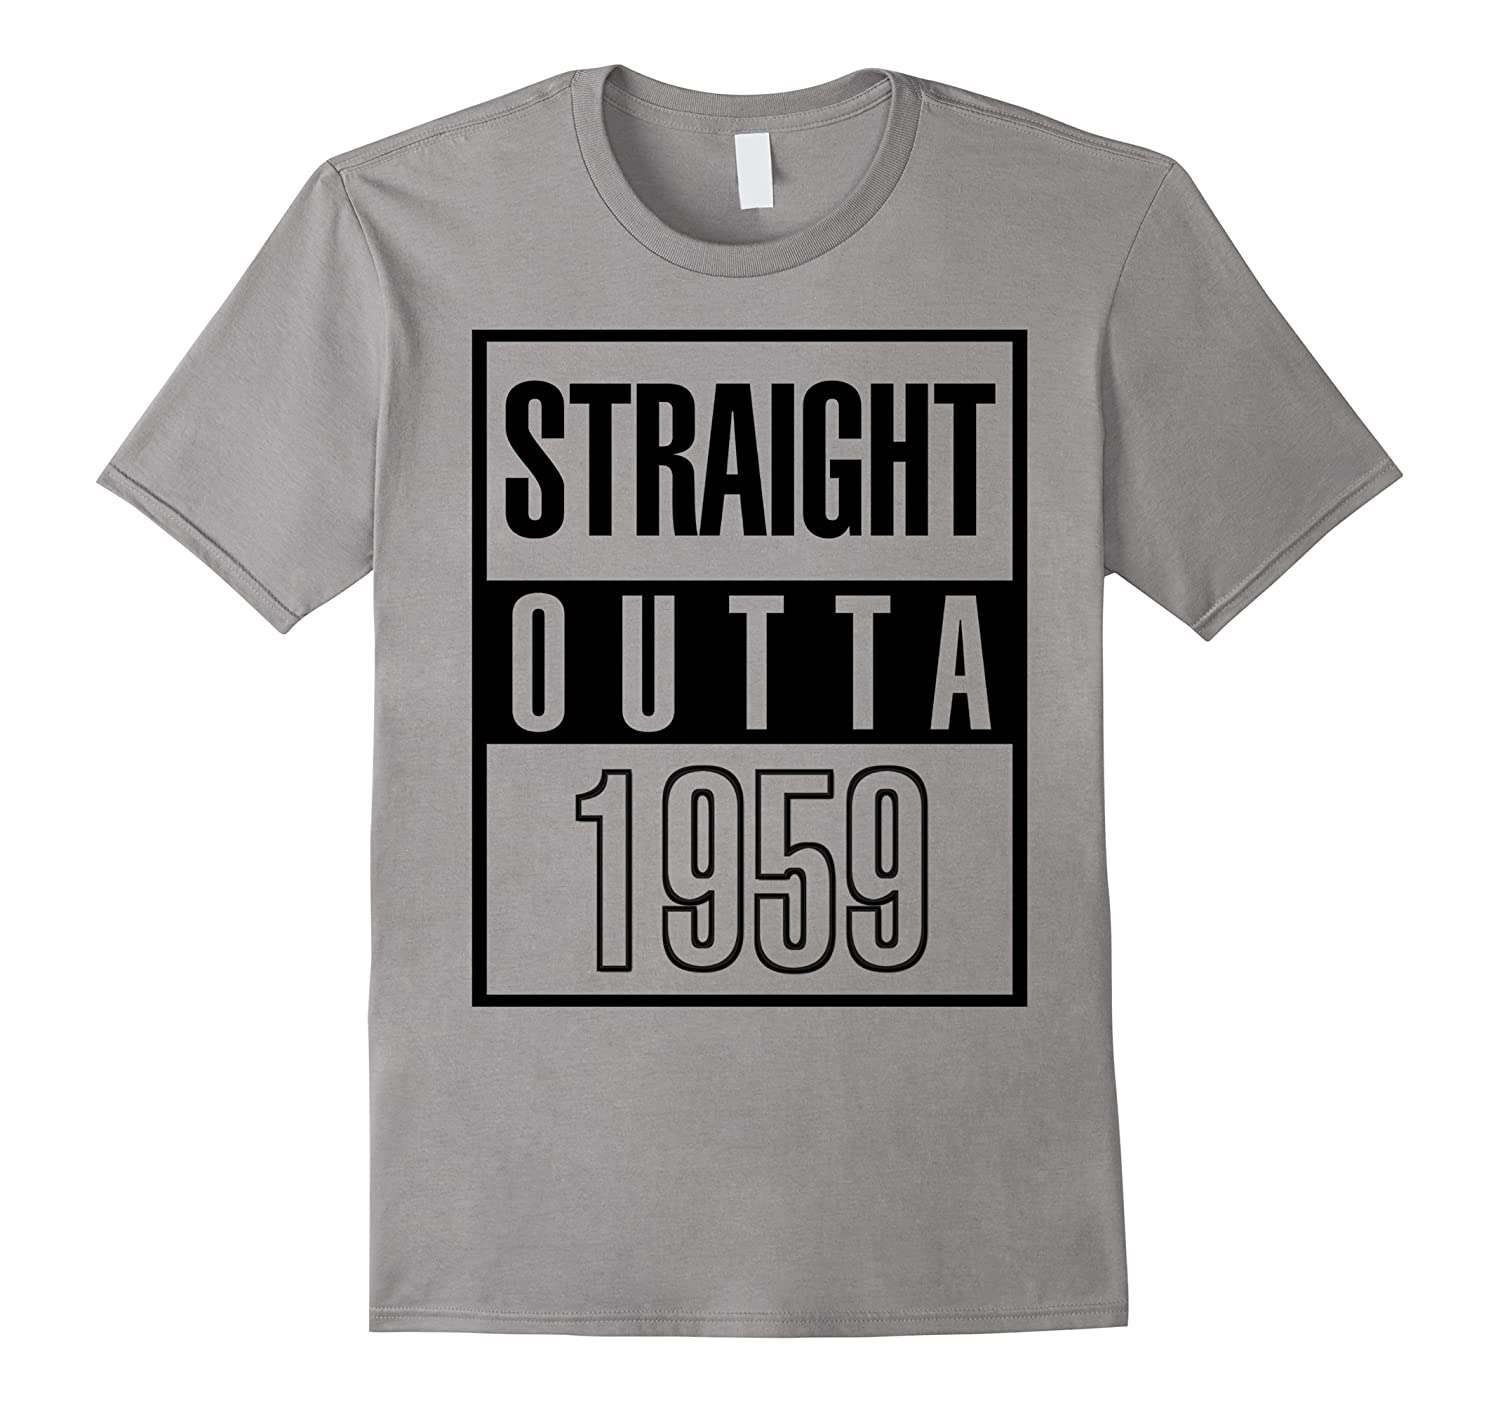 1959 58th Years Old Funny Birthday Gift T-Shirt-4LVS